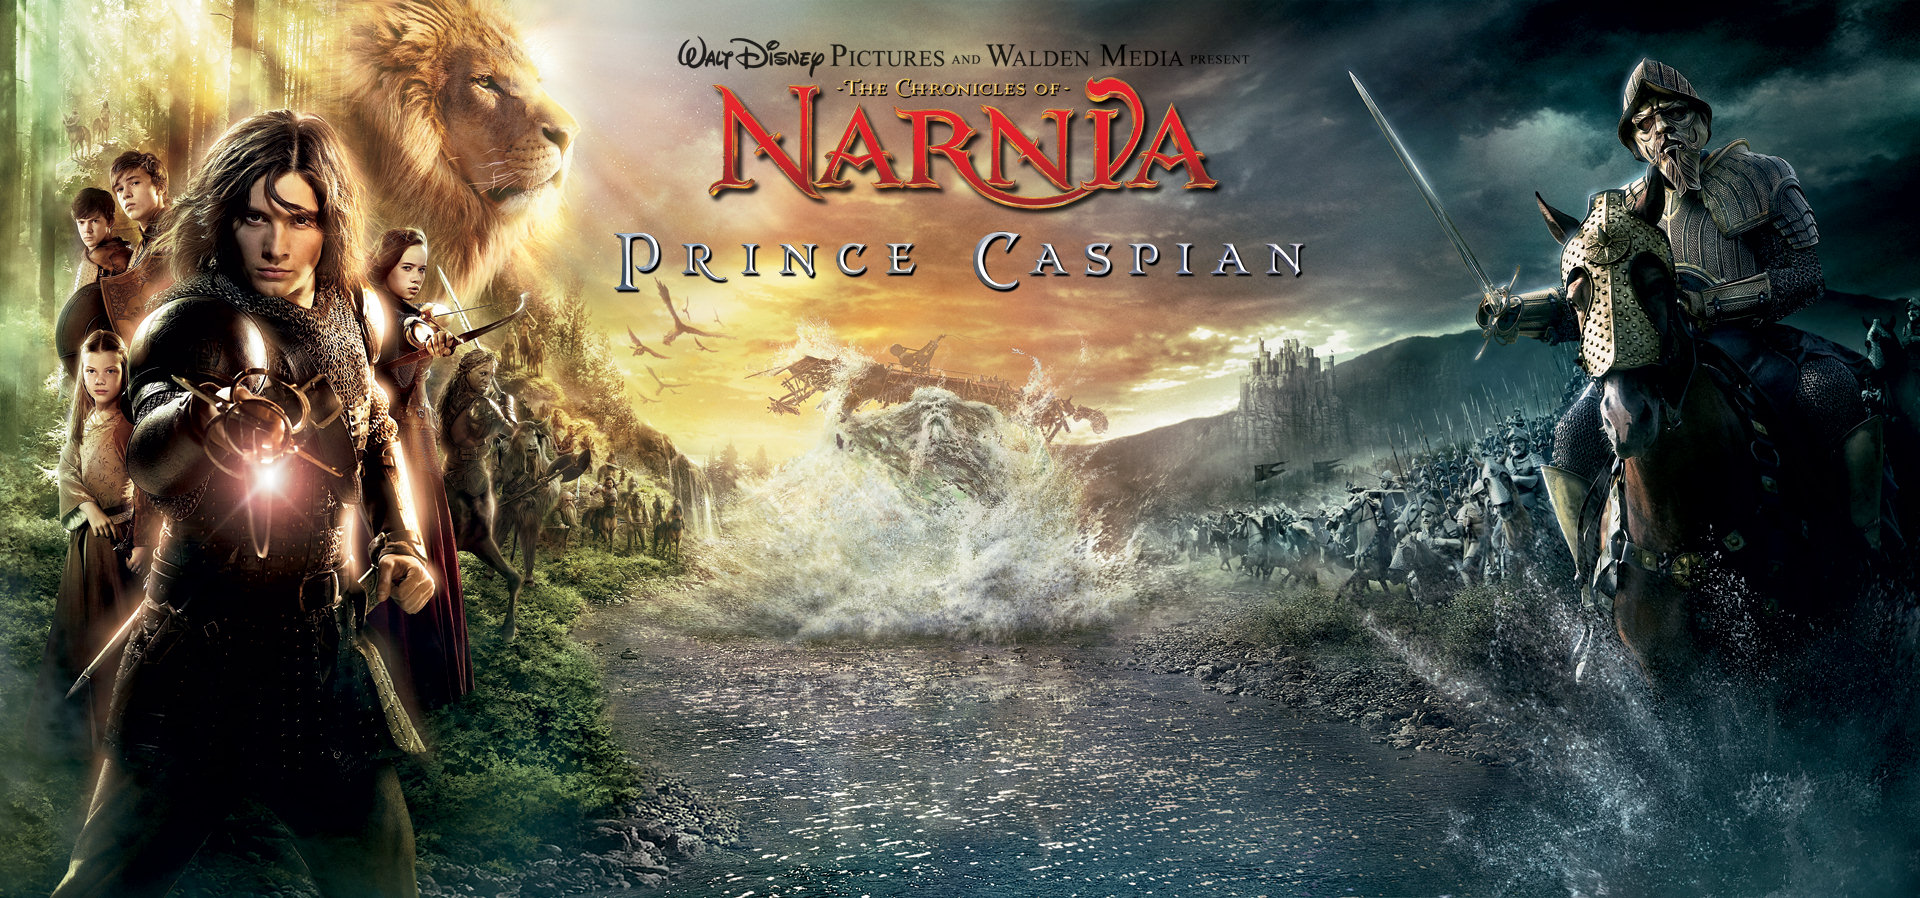 narnia prince caspian Prince caspian is a high fantasy novel for children by c s lewis, published by  geoffrey bles  prince caspian features return to narnia by the four pevensie  children of the first novel, about a year later in england but 1300 years later in.